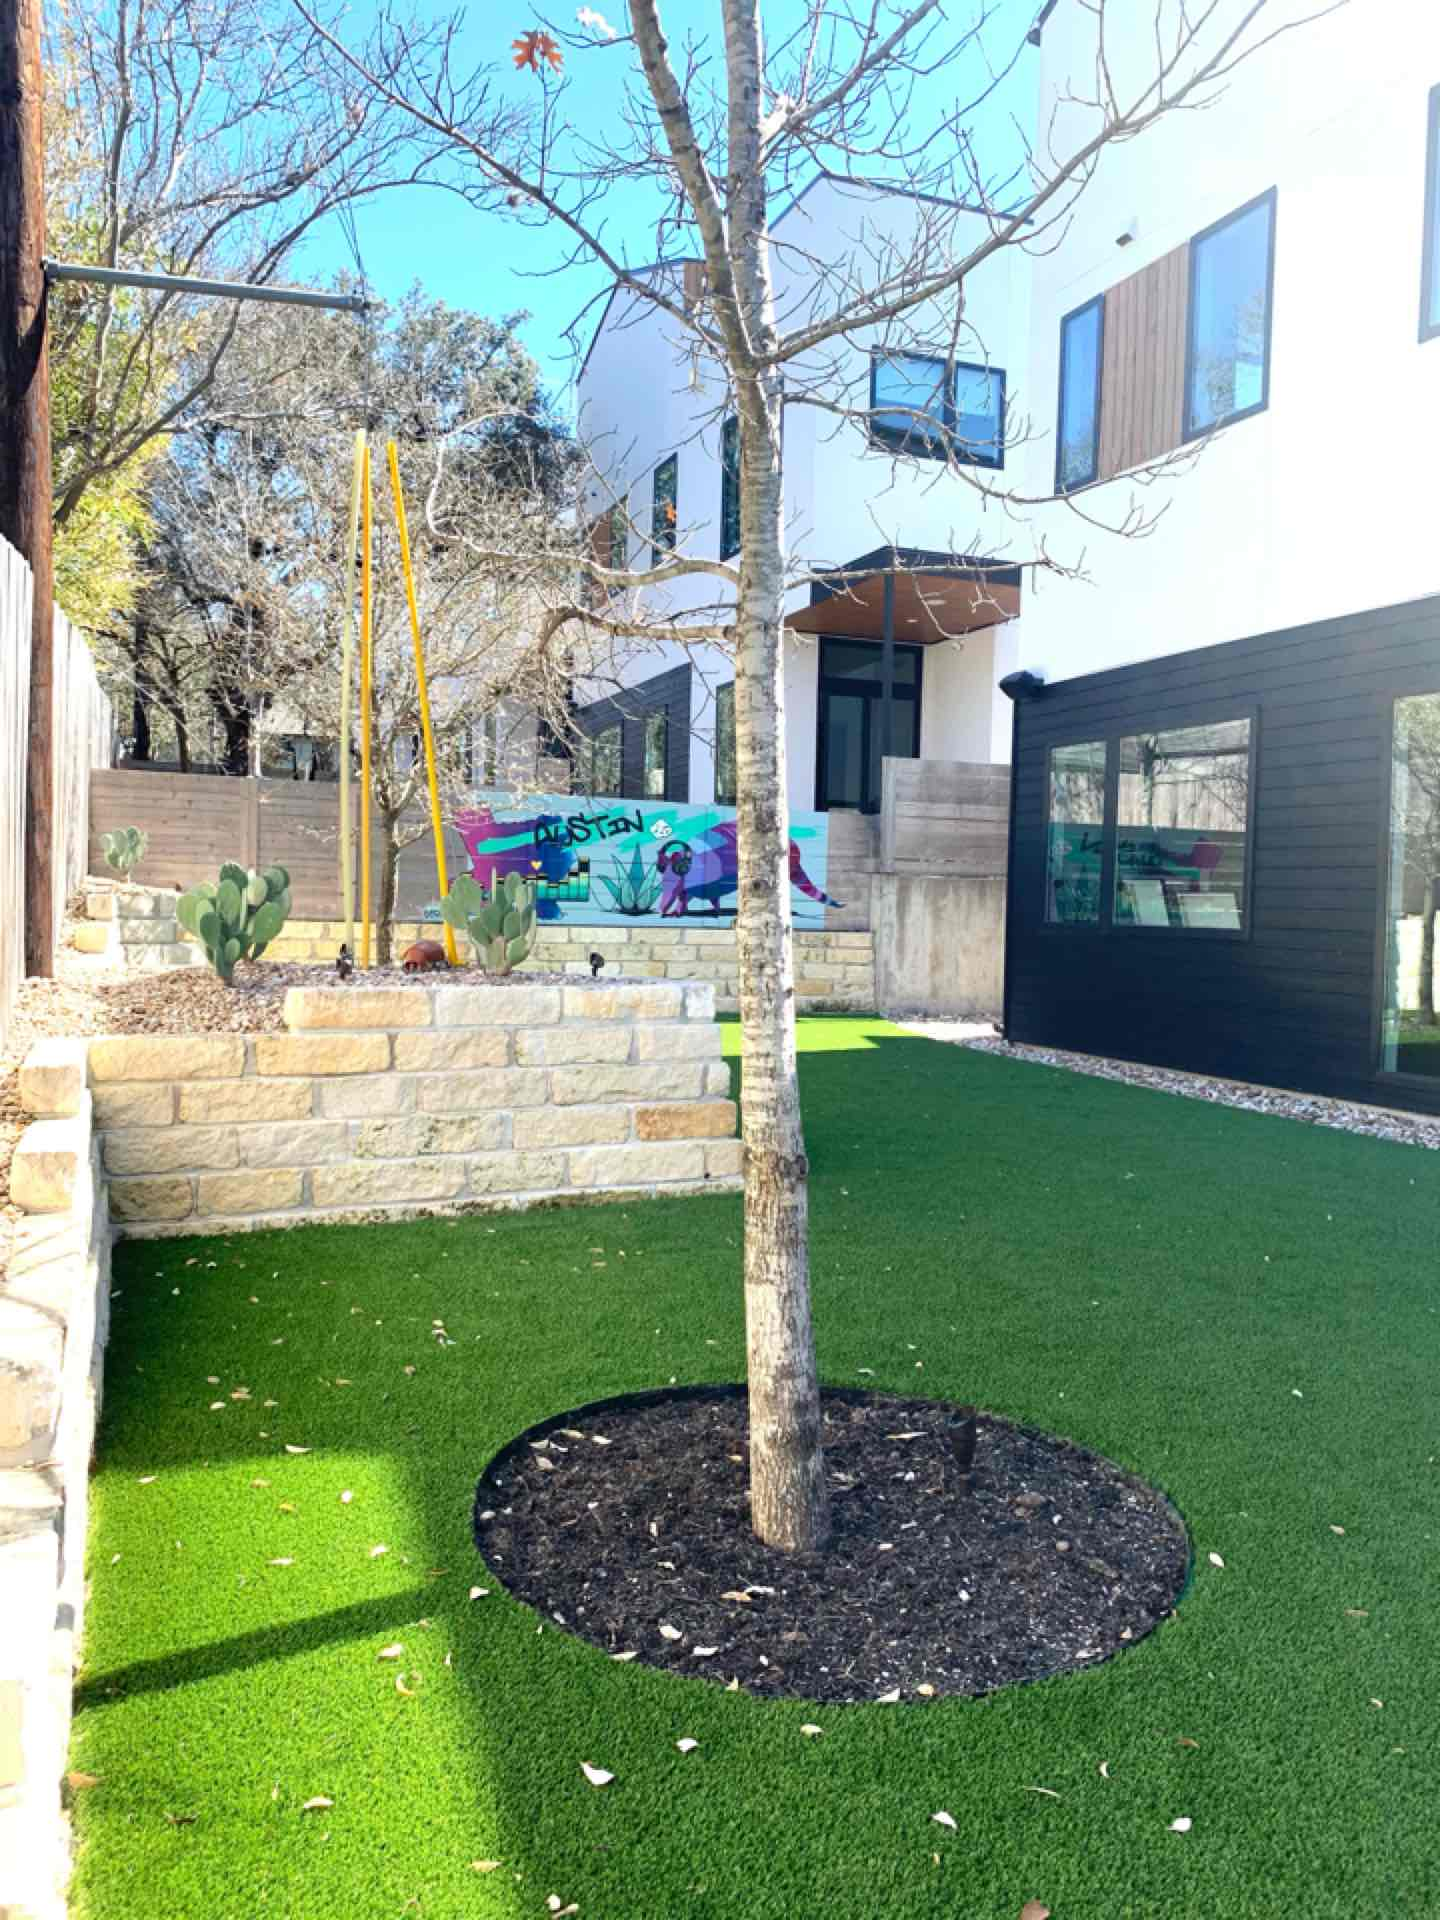 Austin, TX - Another Austin homeowner made the transition to LawnPop synthetic turf, and the results are amazing! Now there's a wonderful backyard social area that's great for entertaining guests, and amazing for pets! Our synthetic turf is eco friendly and helps homeowners save tons by reducing their water bill!